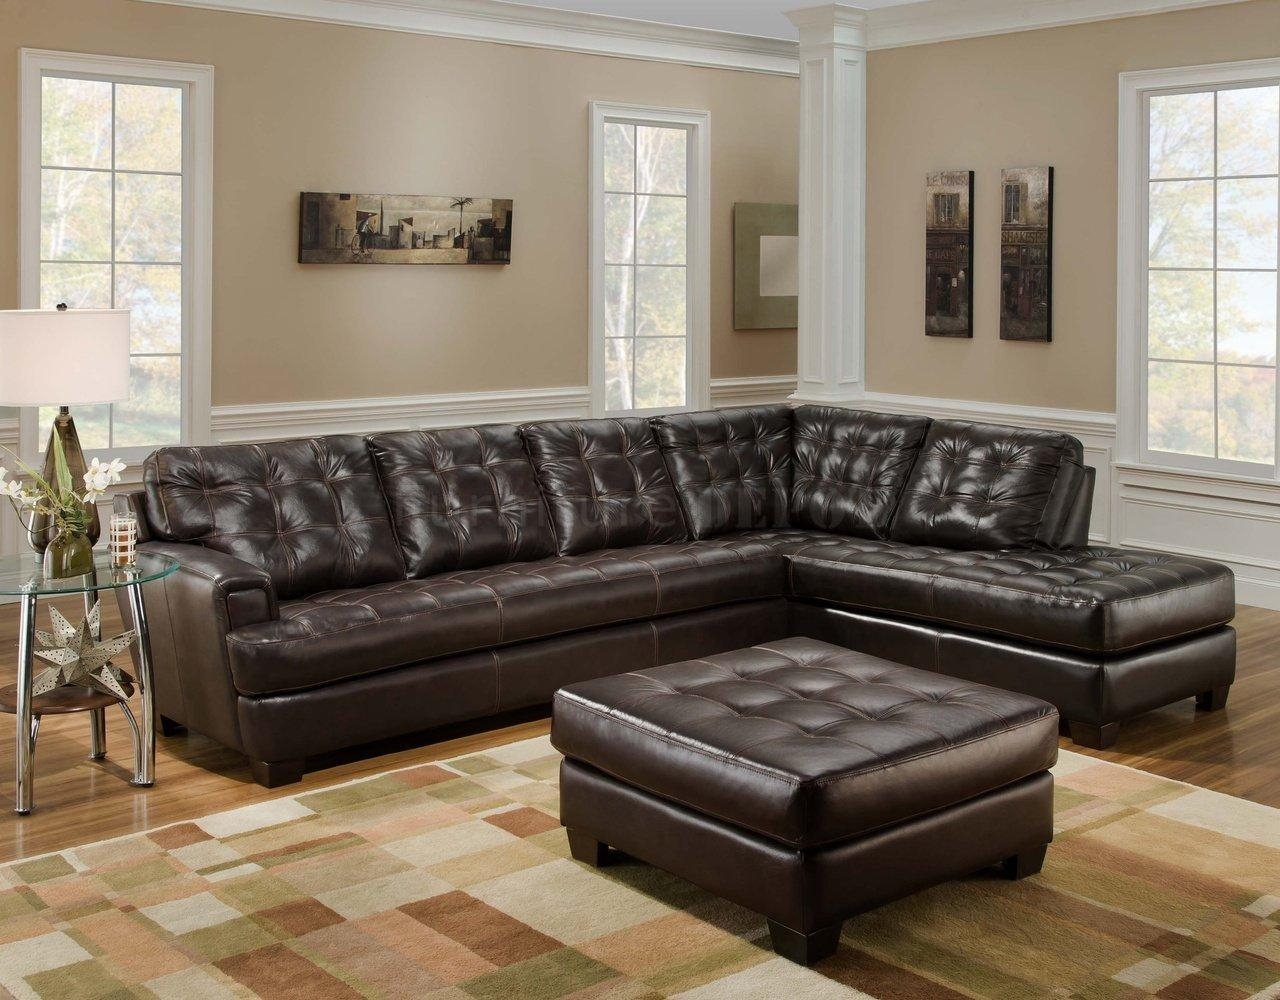 Dark Brown Leather Sofa Dye Pinterest The World S Catalog Of Ideas Within Brown Leather Tufted Sofas (Image 4 of 20)